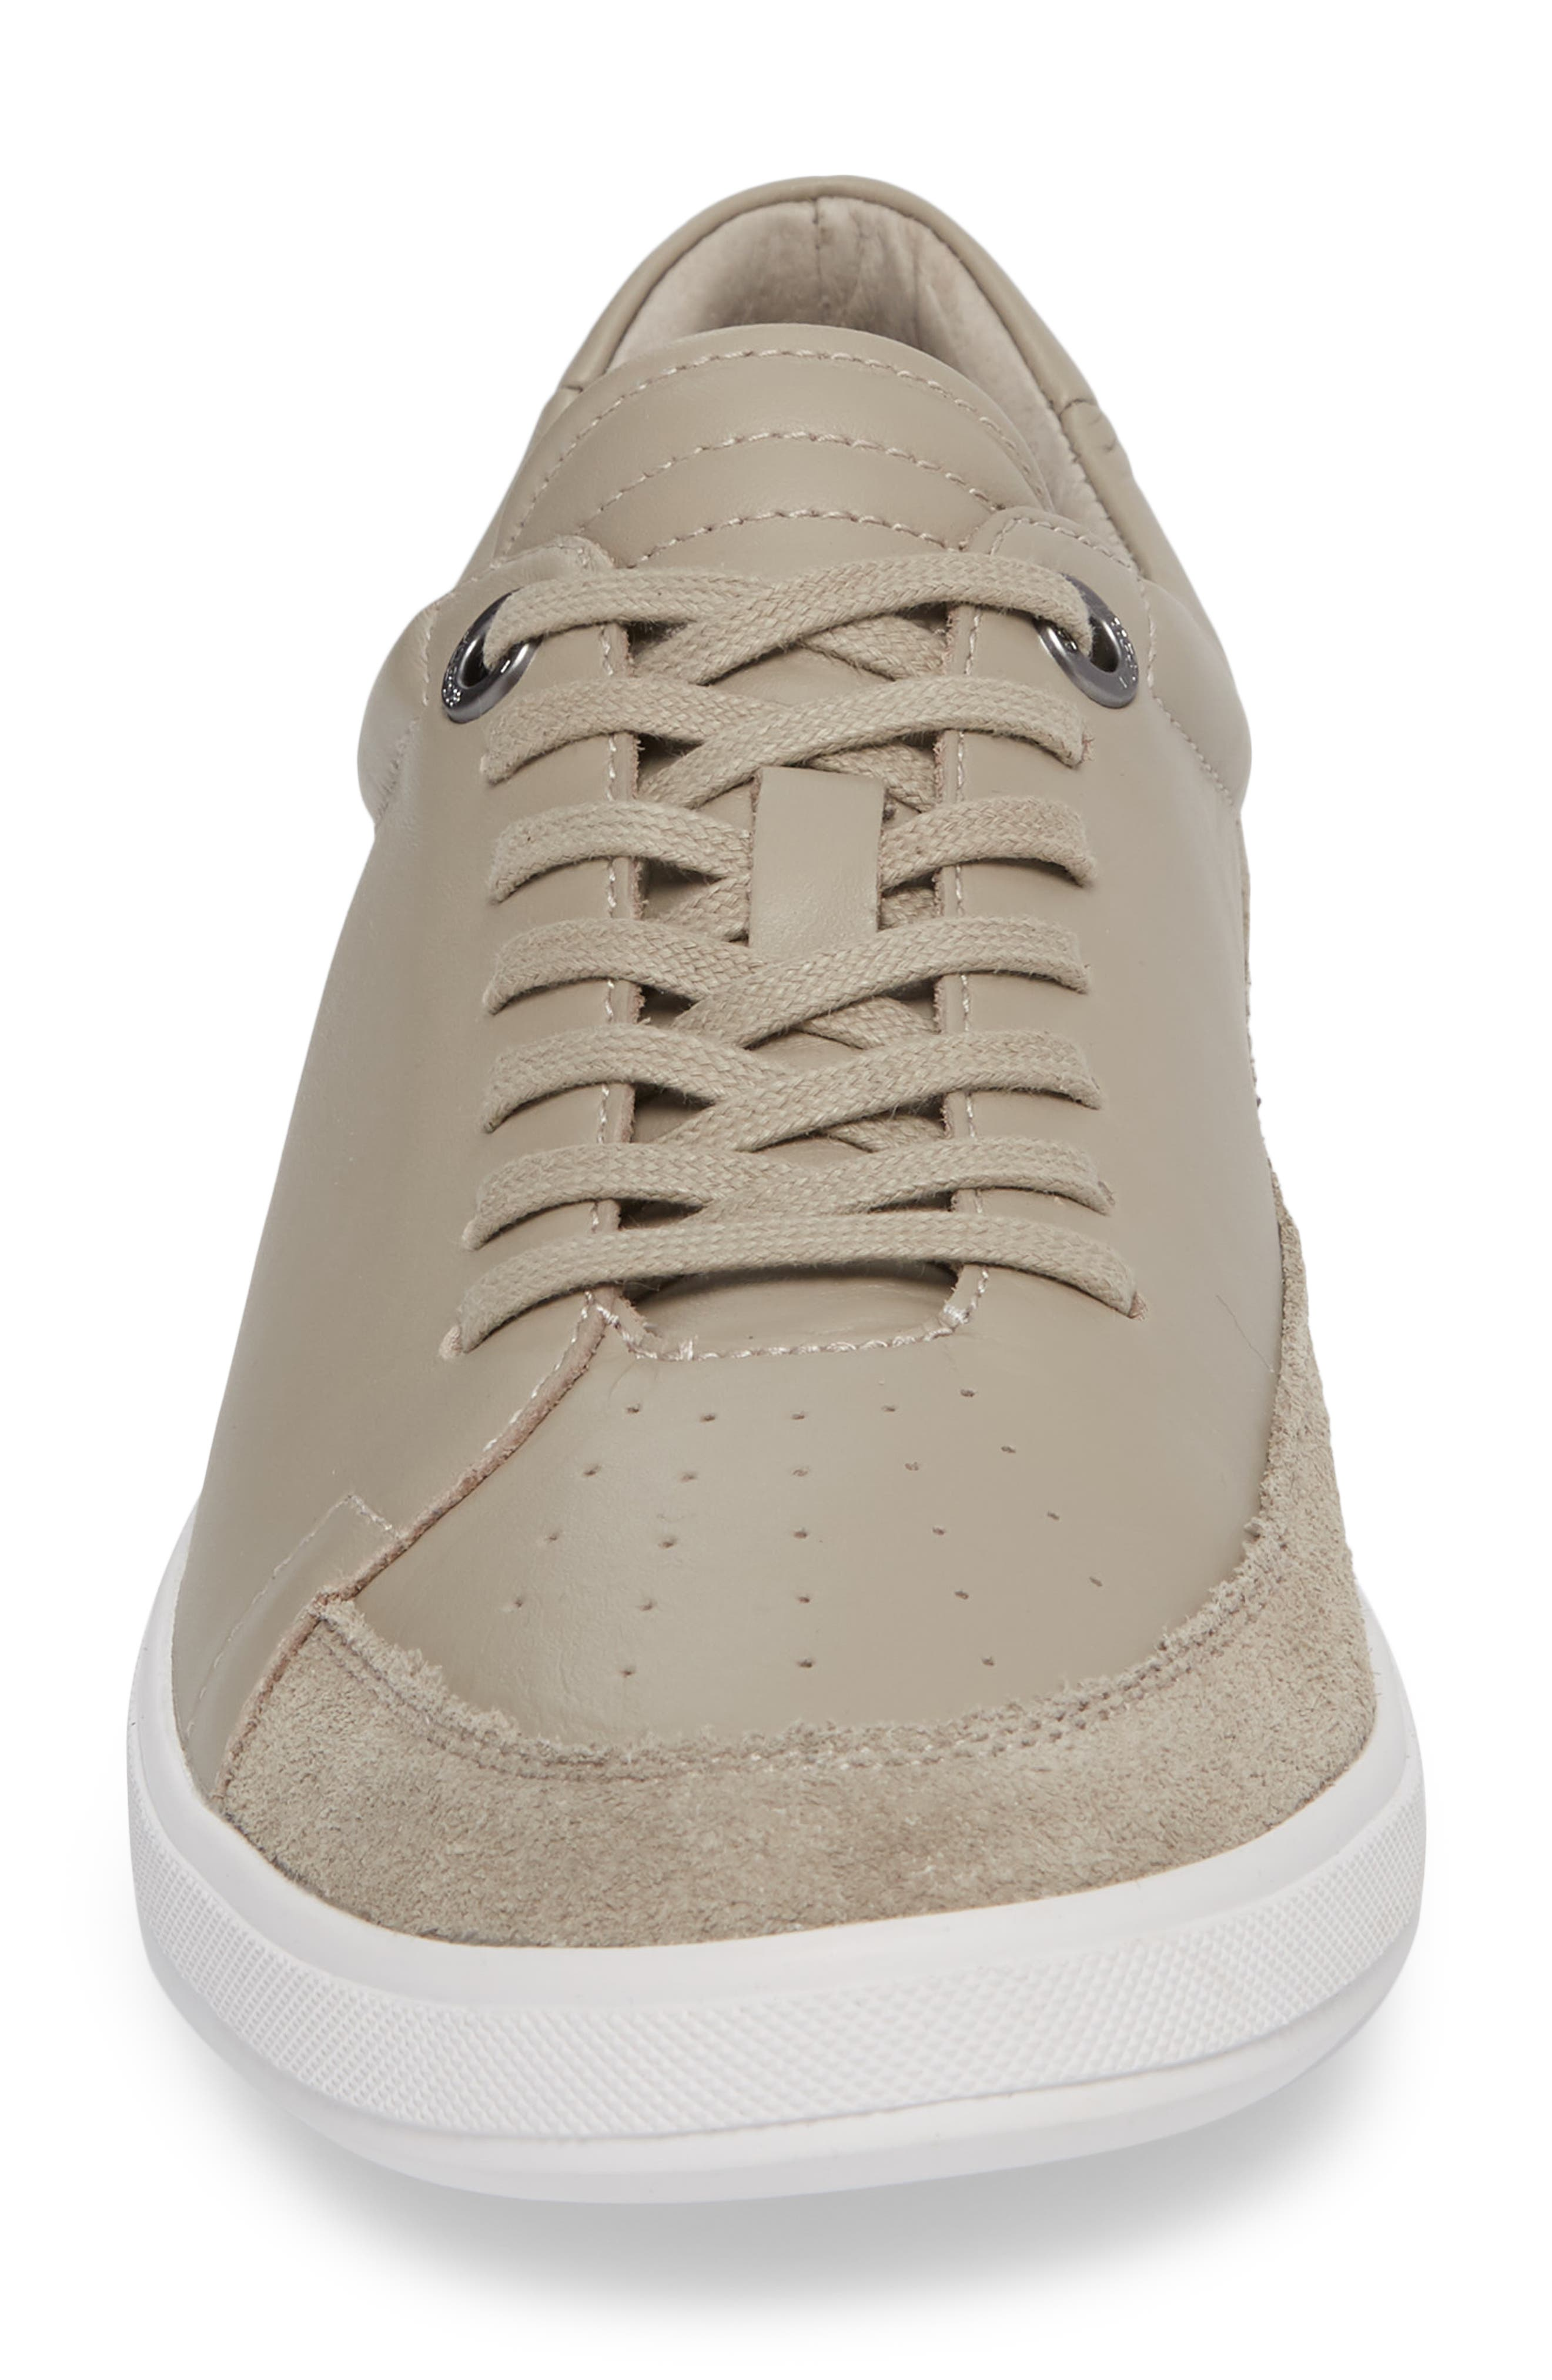 Joe Classic Low Top Sneaker,                             Alternate thumbnail 4, color,                             STONE LEATHER